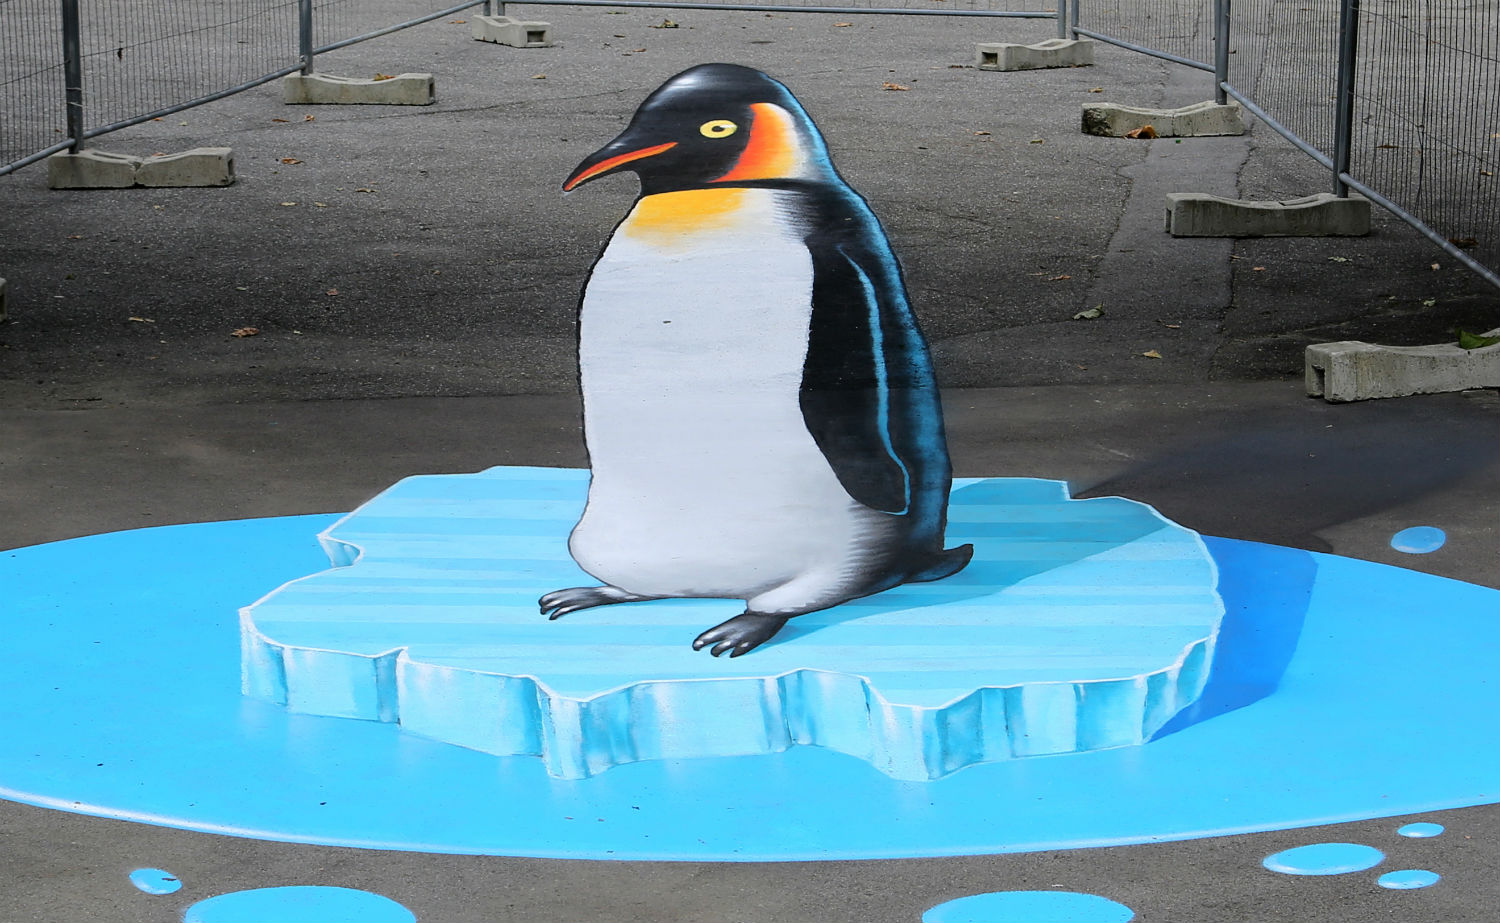 nevercrew street art graffiti penguin anamorphic